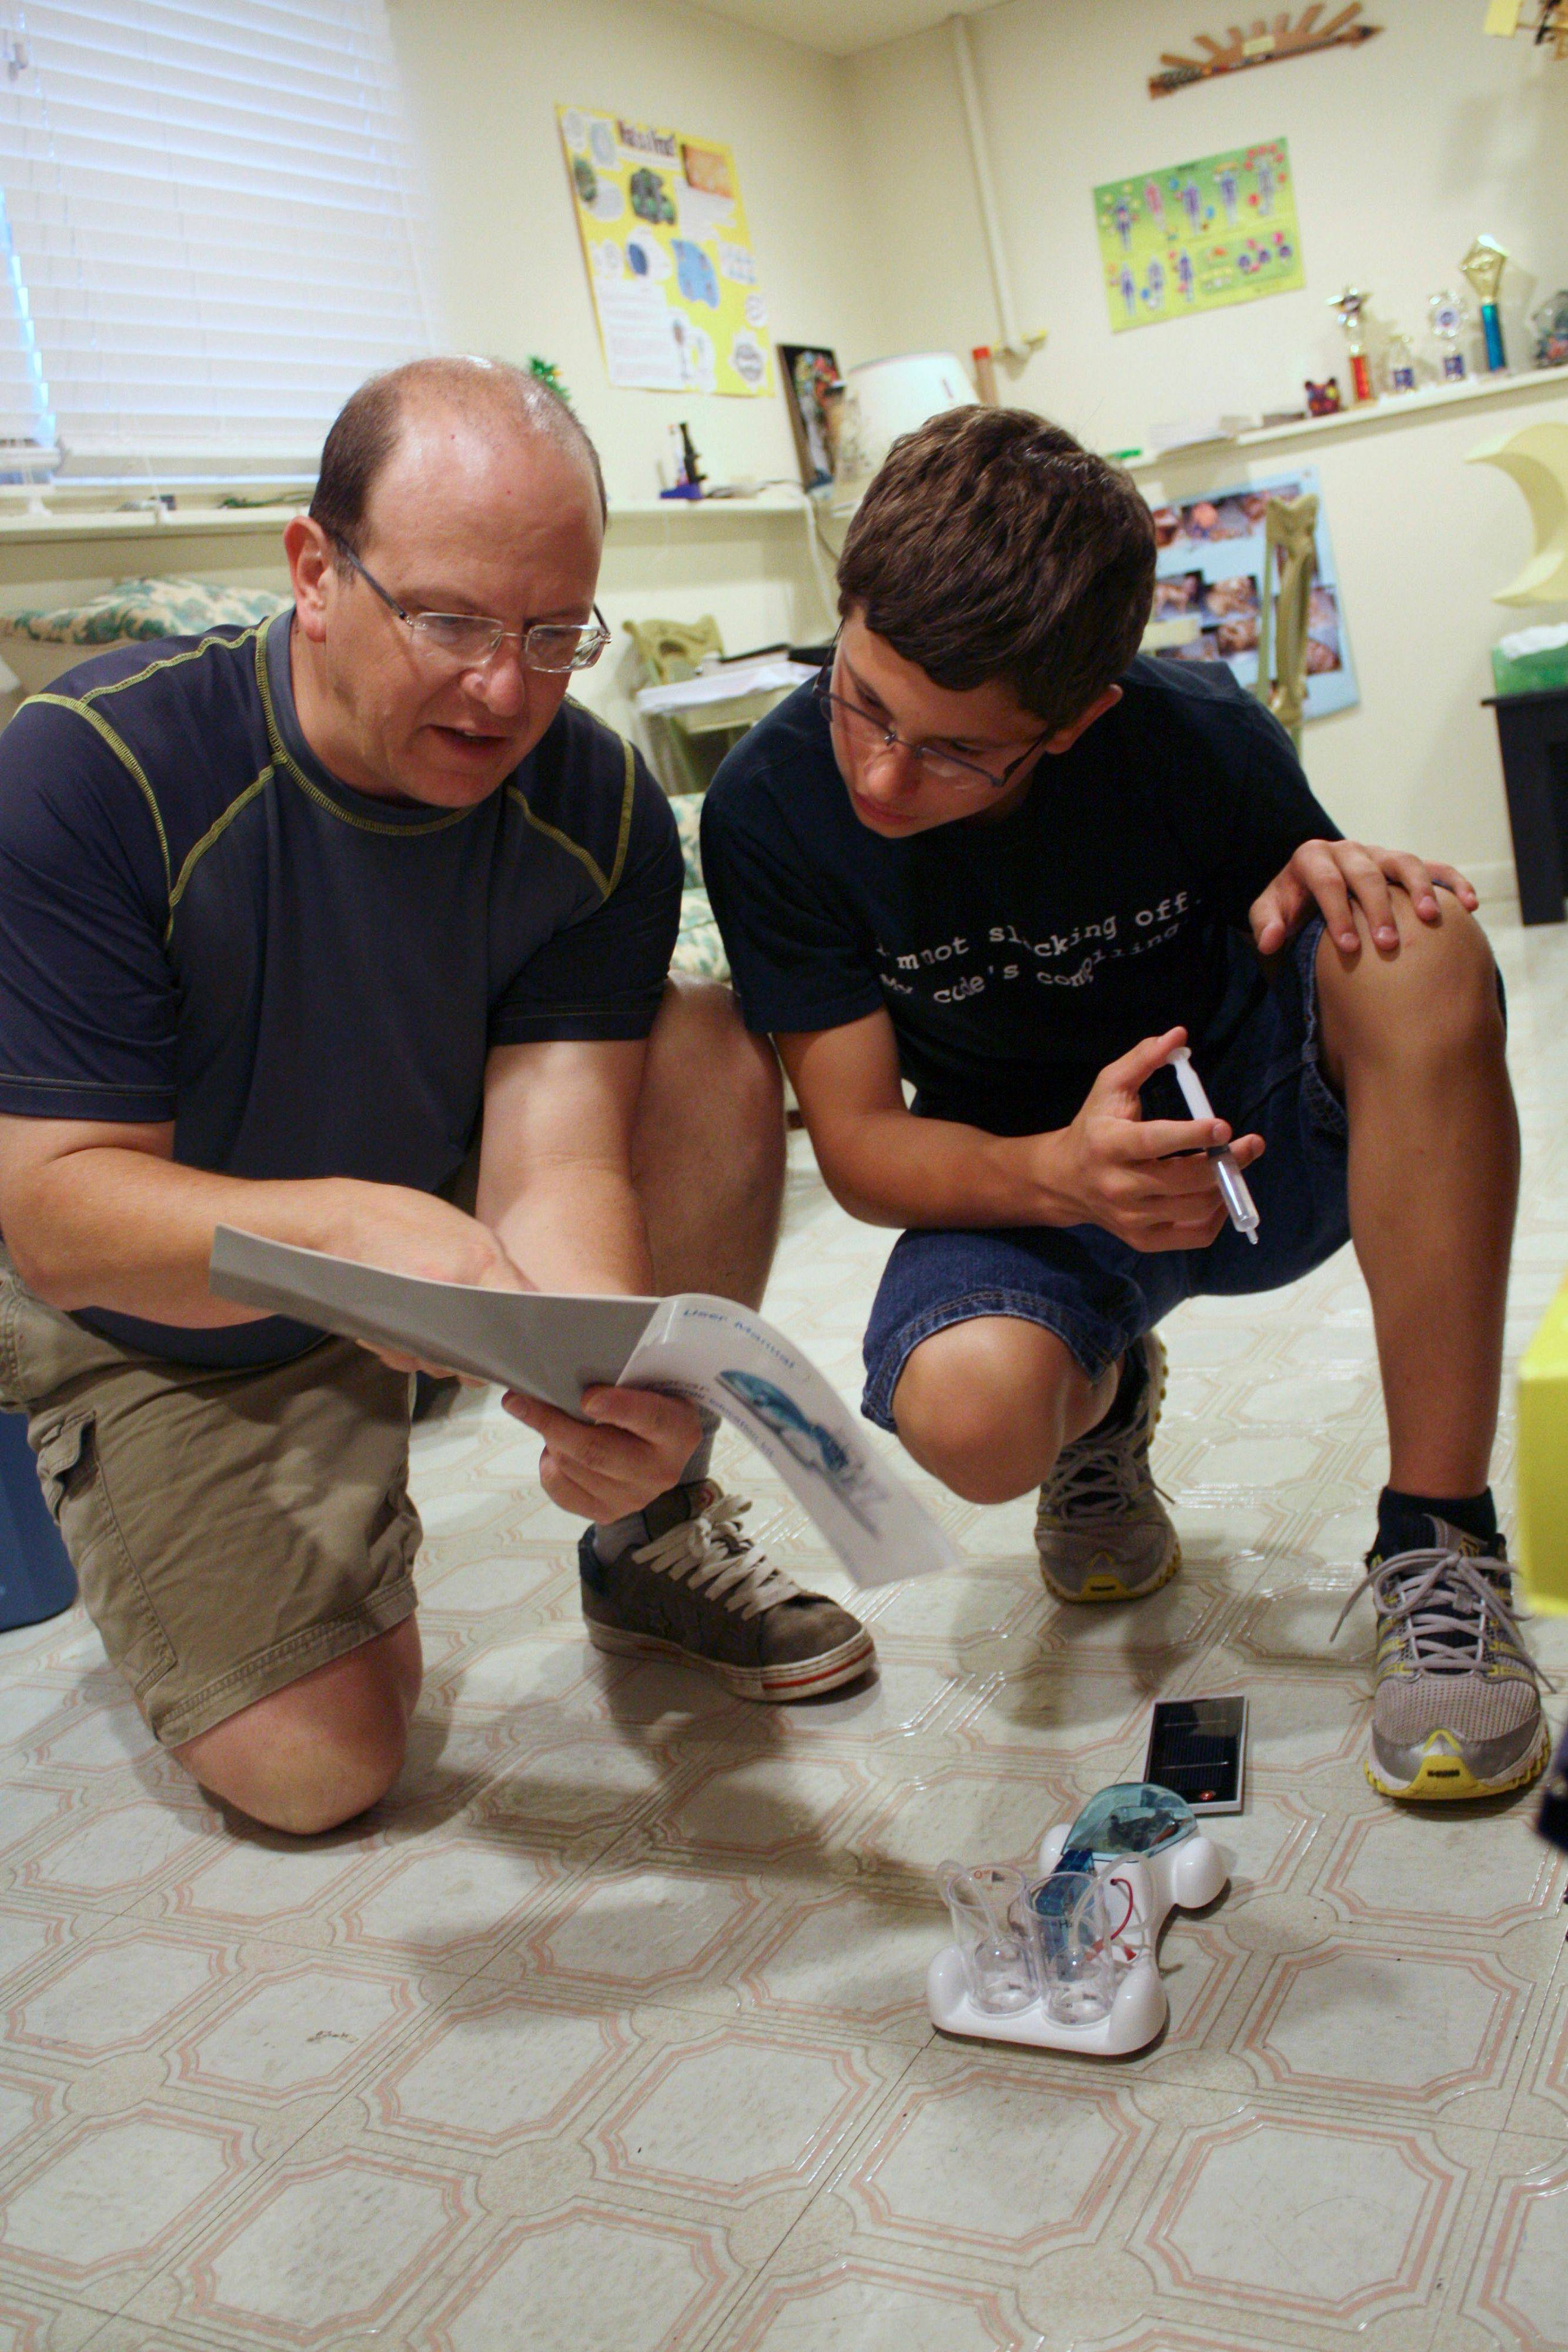 Noah Egler, 13, and his father, Mark, work together on a science experiment in the basement of their home in Bourbonnais.